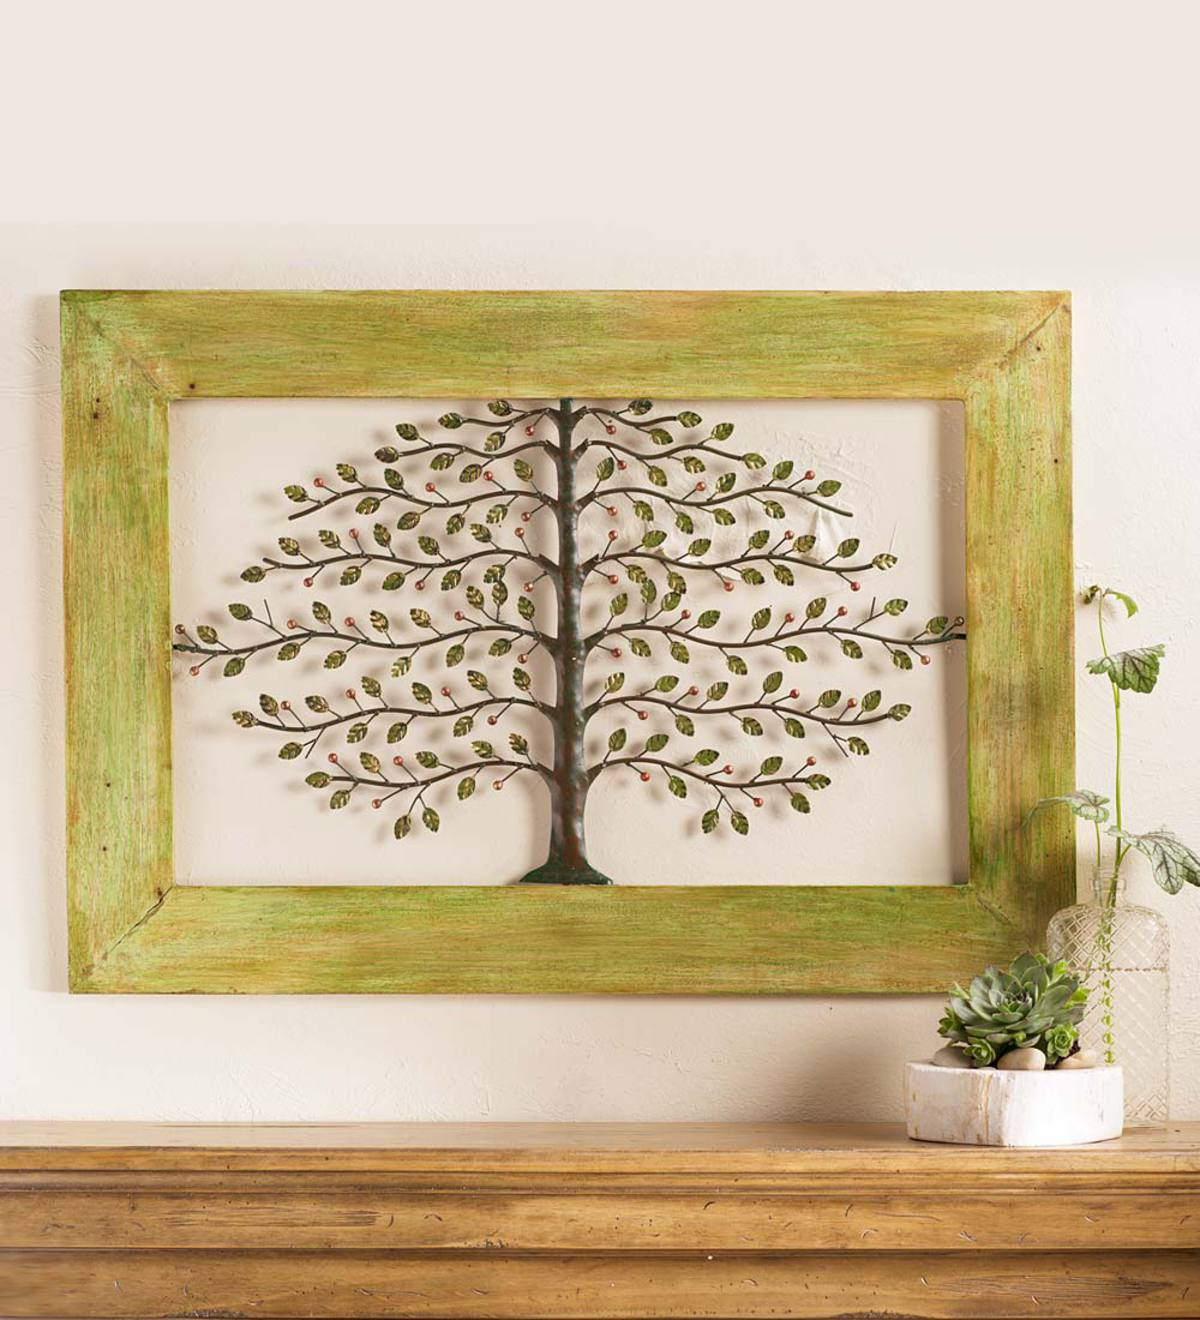 Framed Metal Tree of Life Wall Art | Fall Home Decor | Wind and Weather